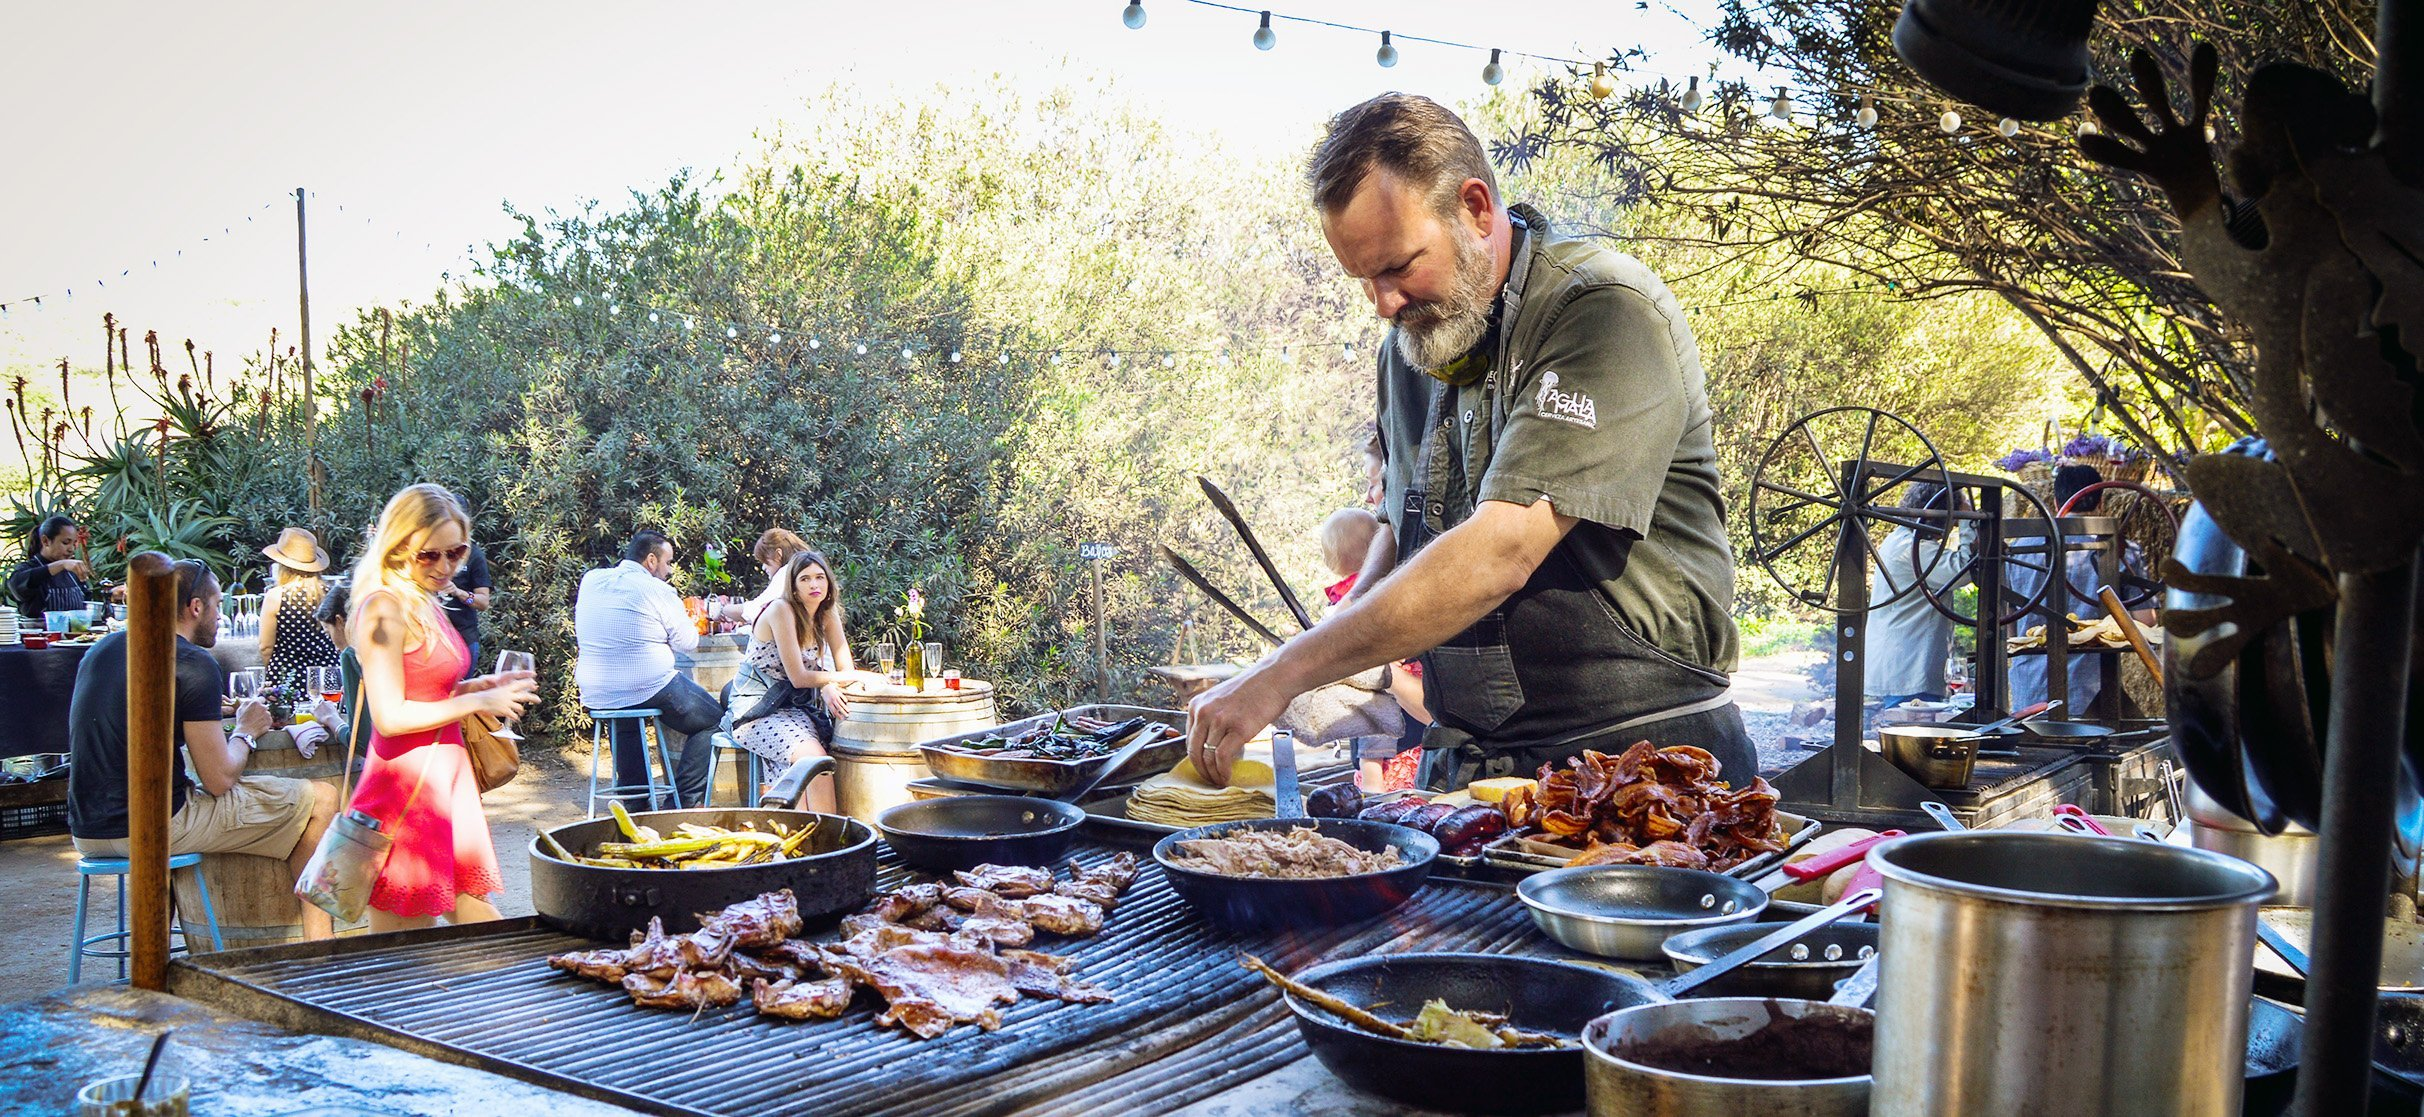 What Are The Different Types Of Barbecue In The USA?